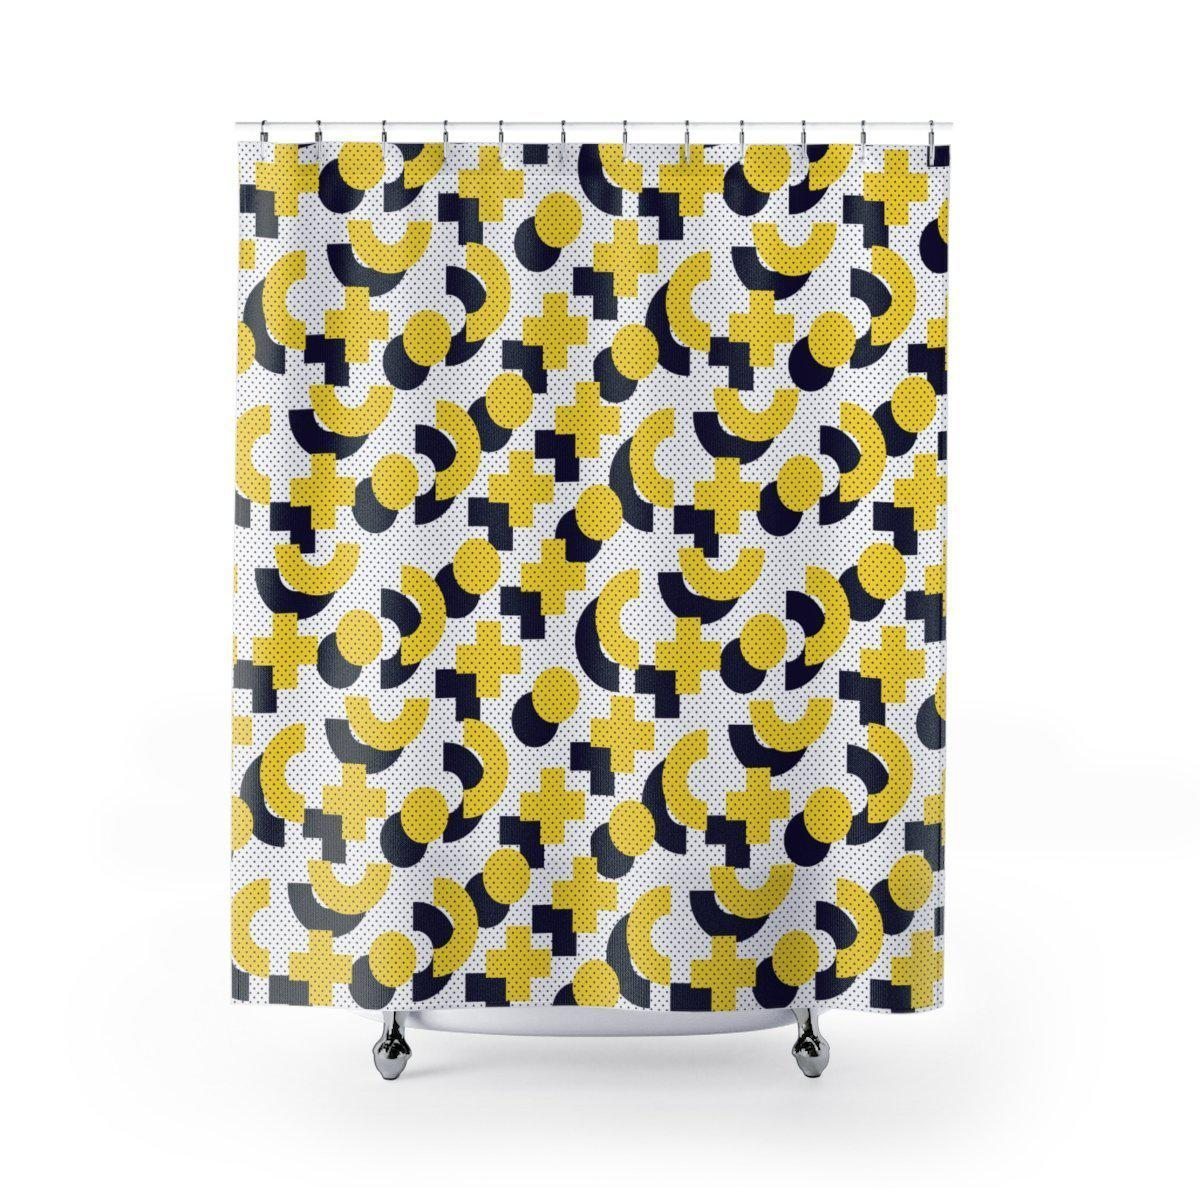 Maison DElite Geometric Shower Curtain